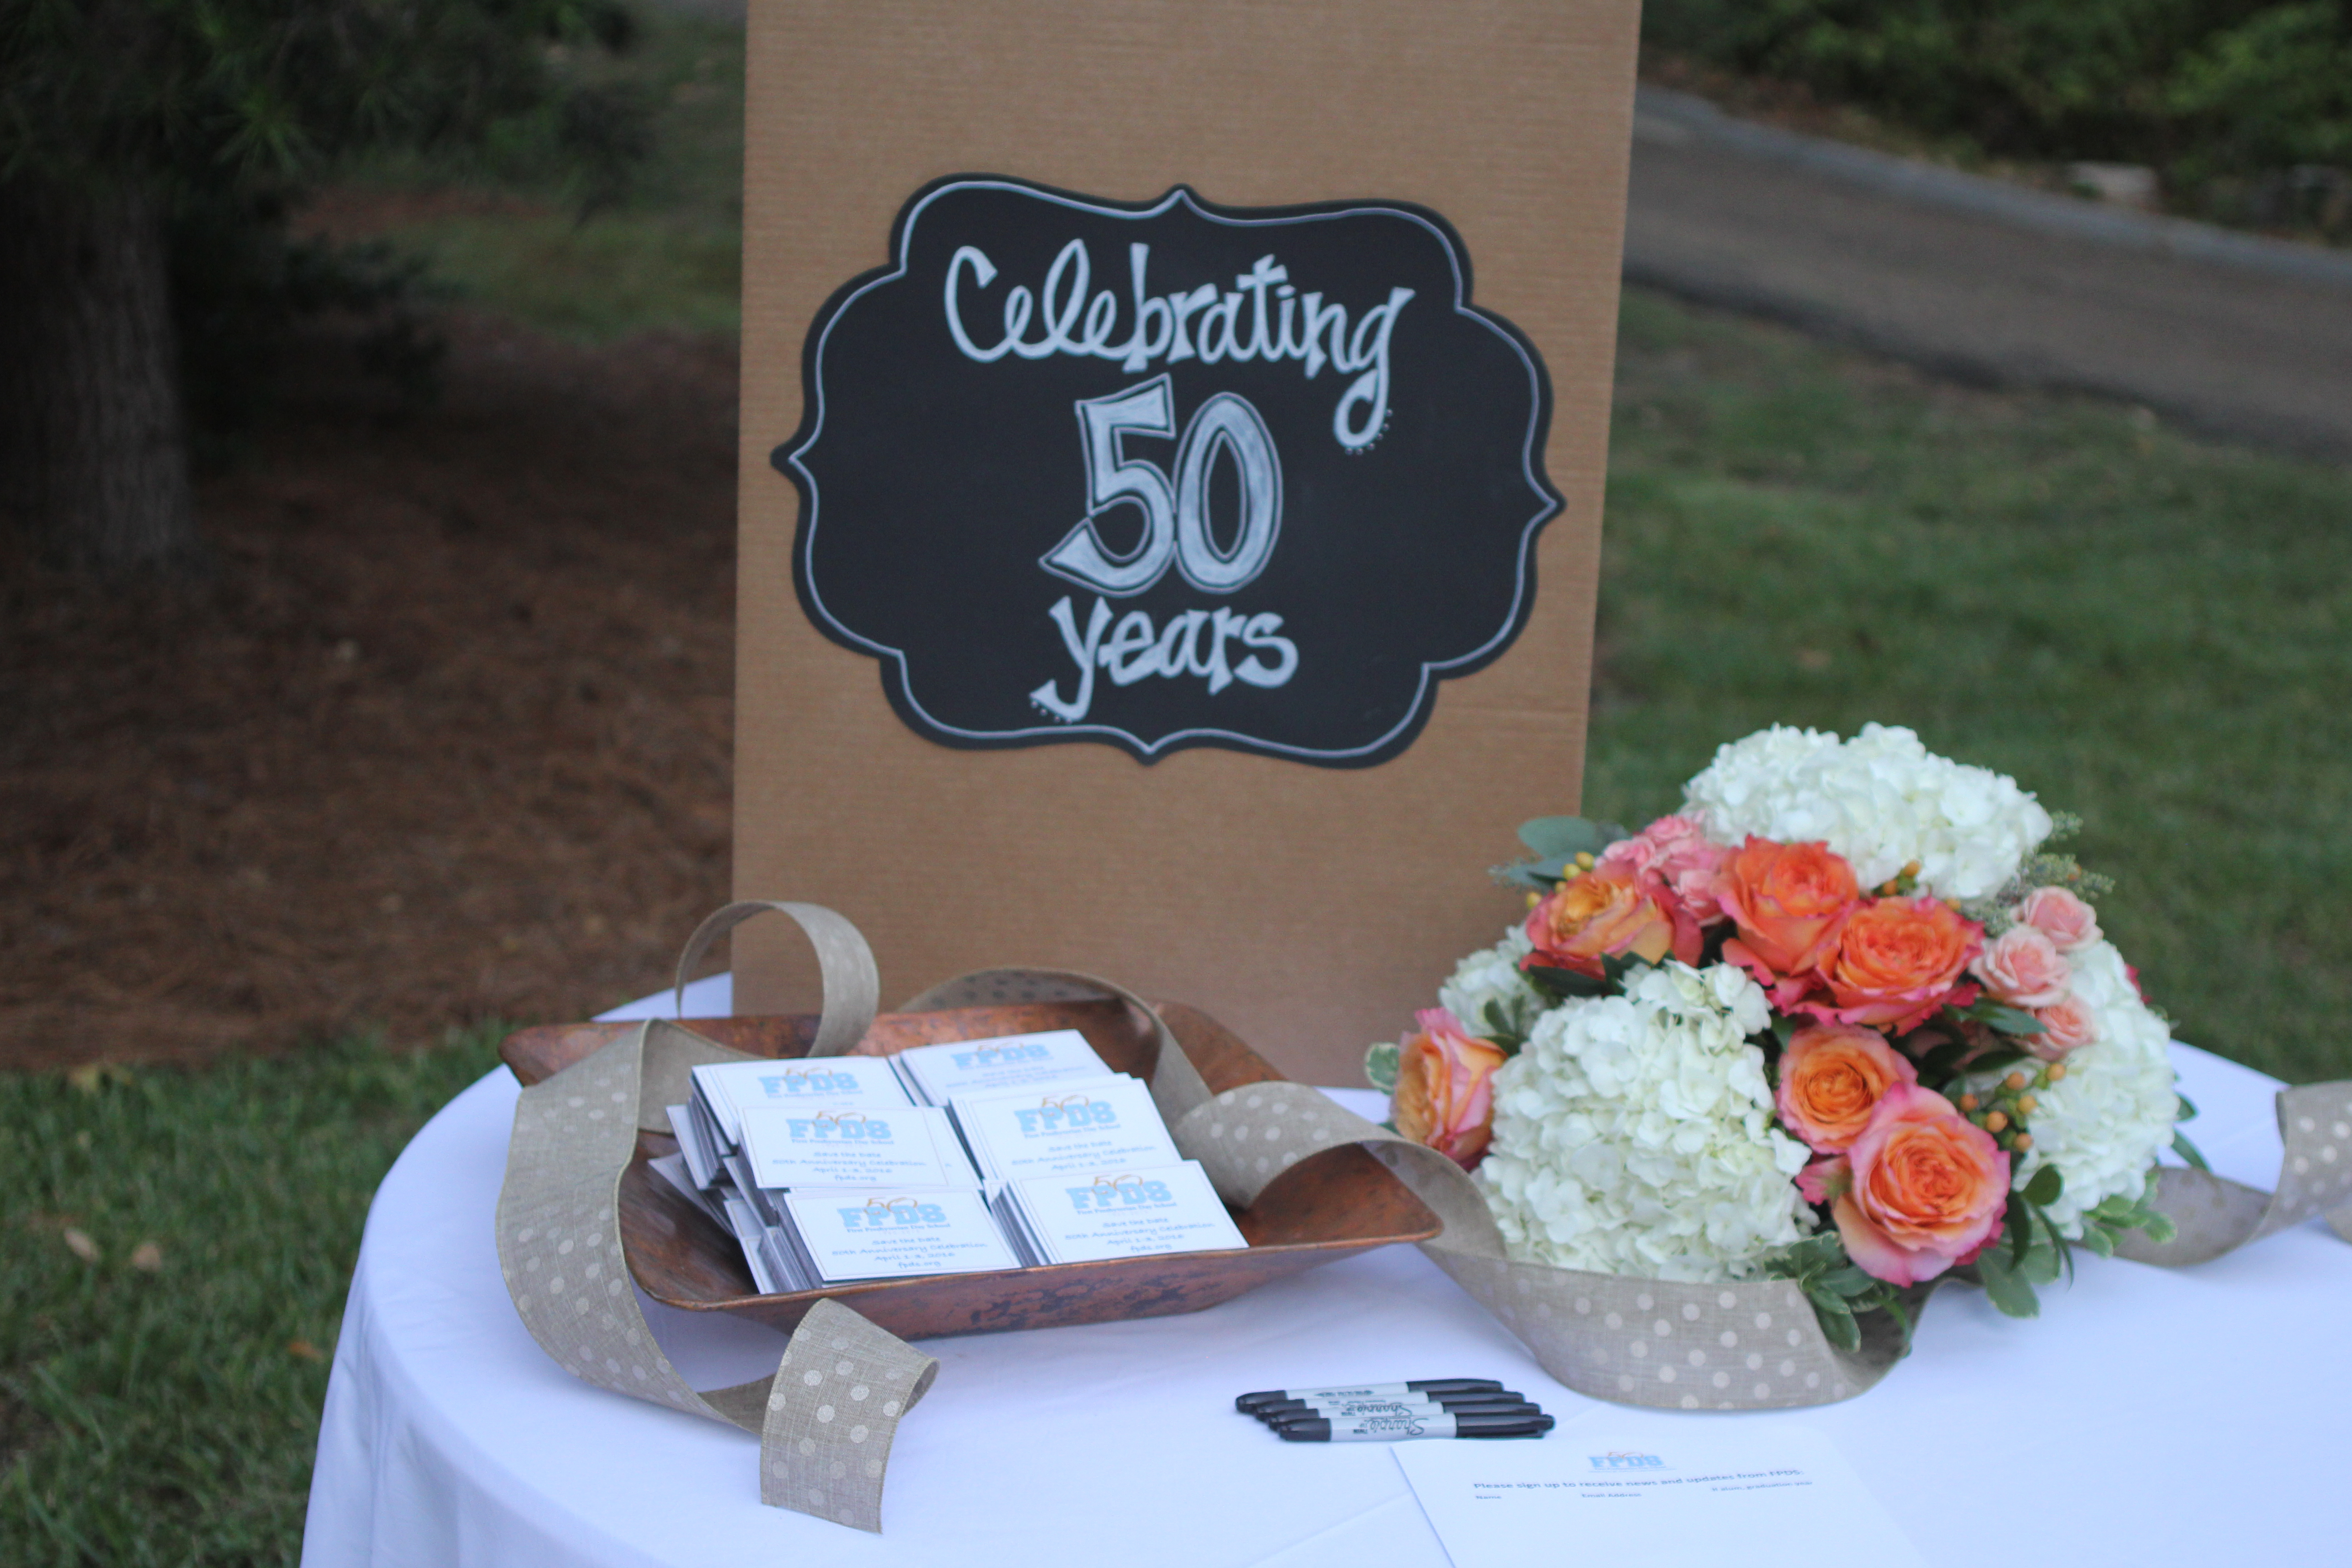 Holiday Potpourri 50 years table